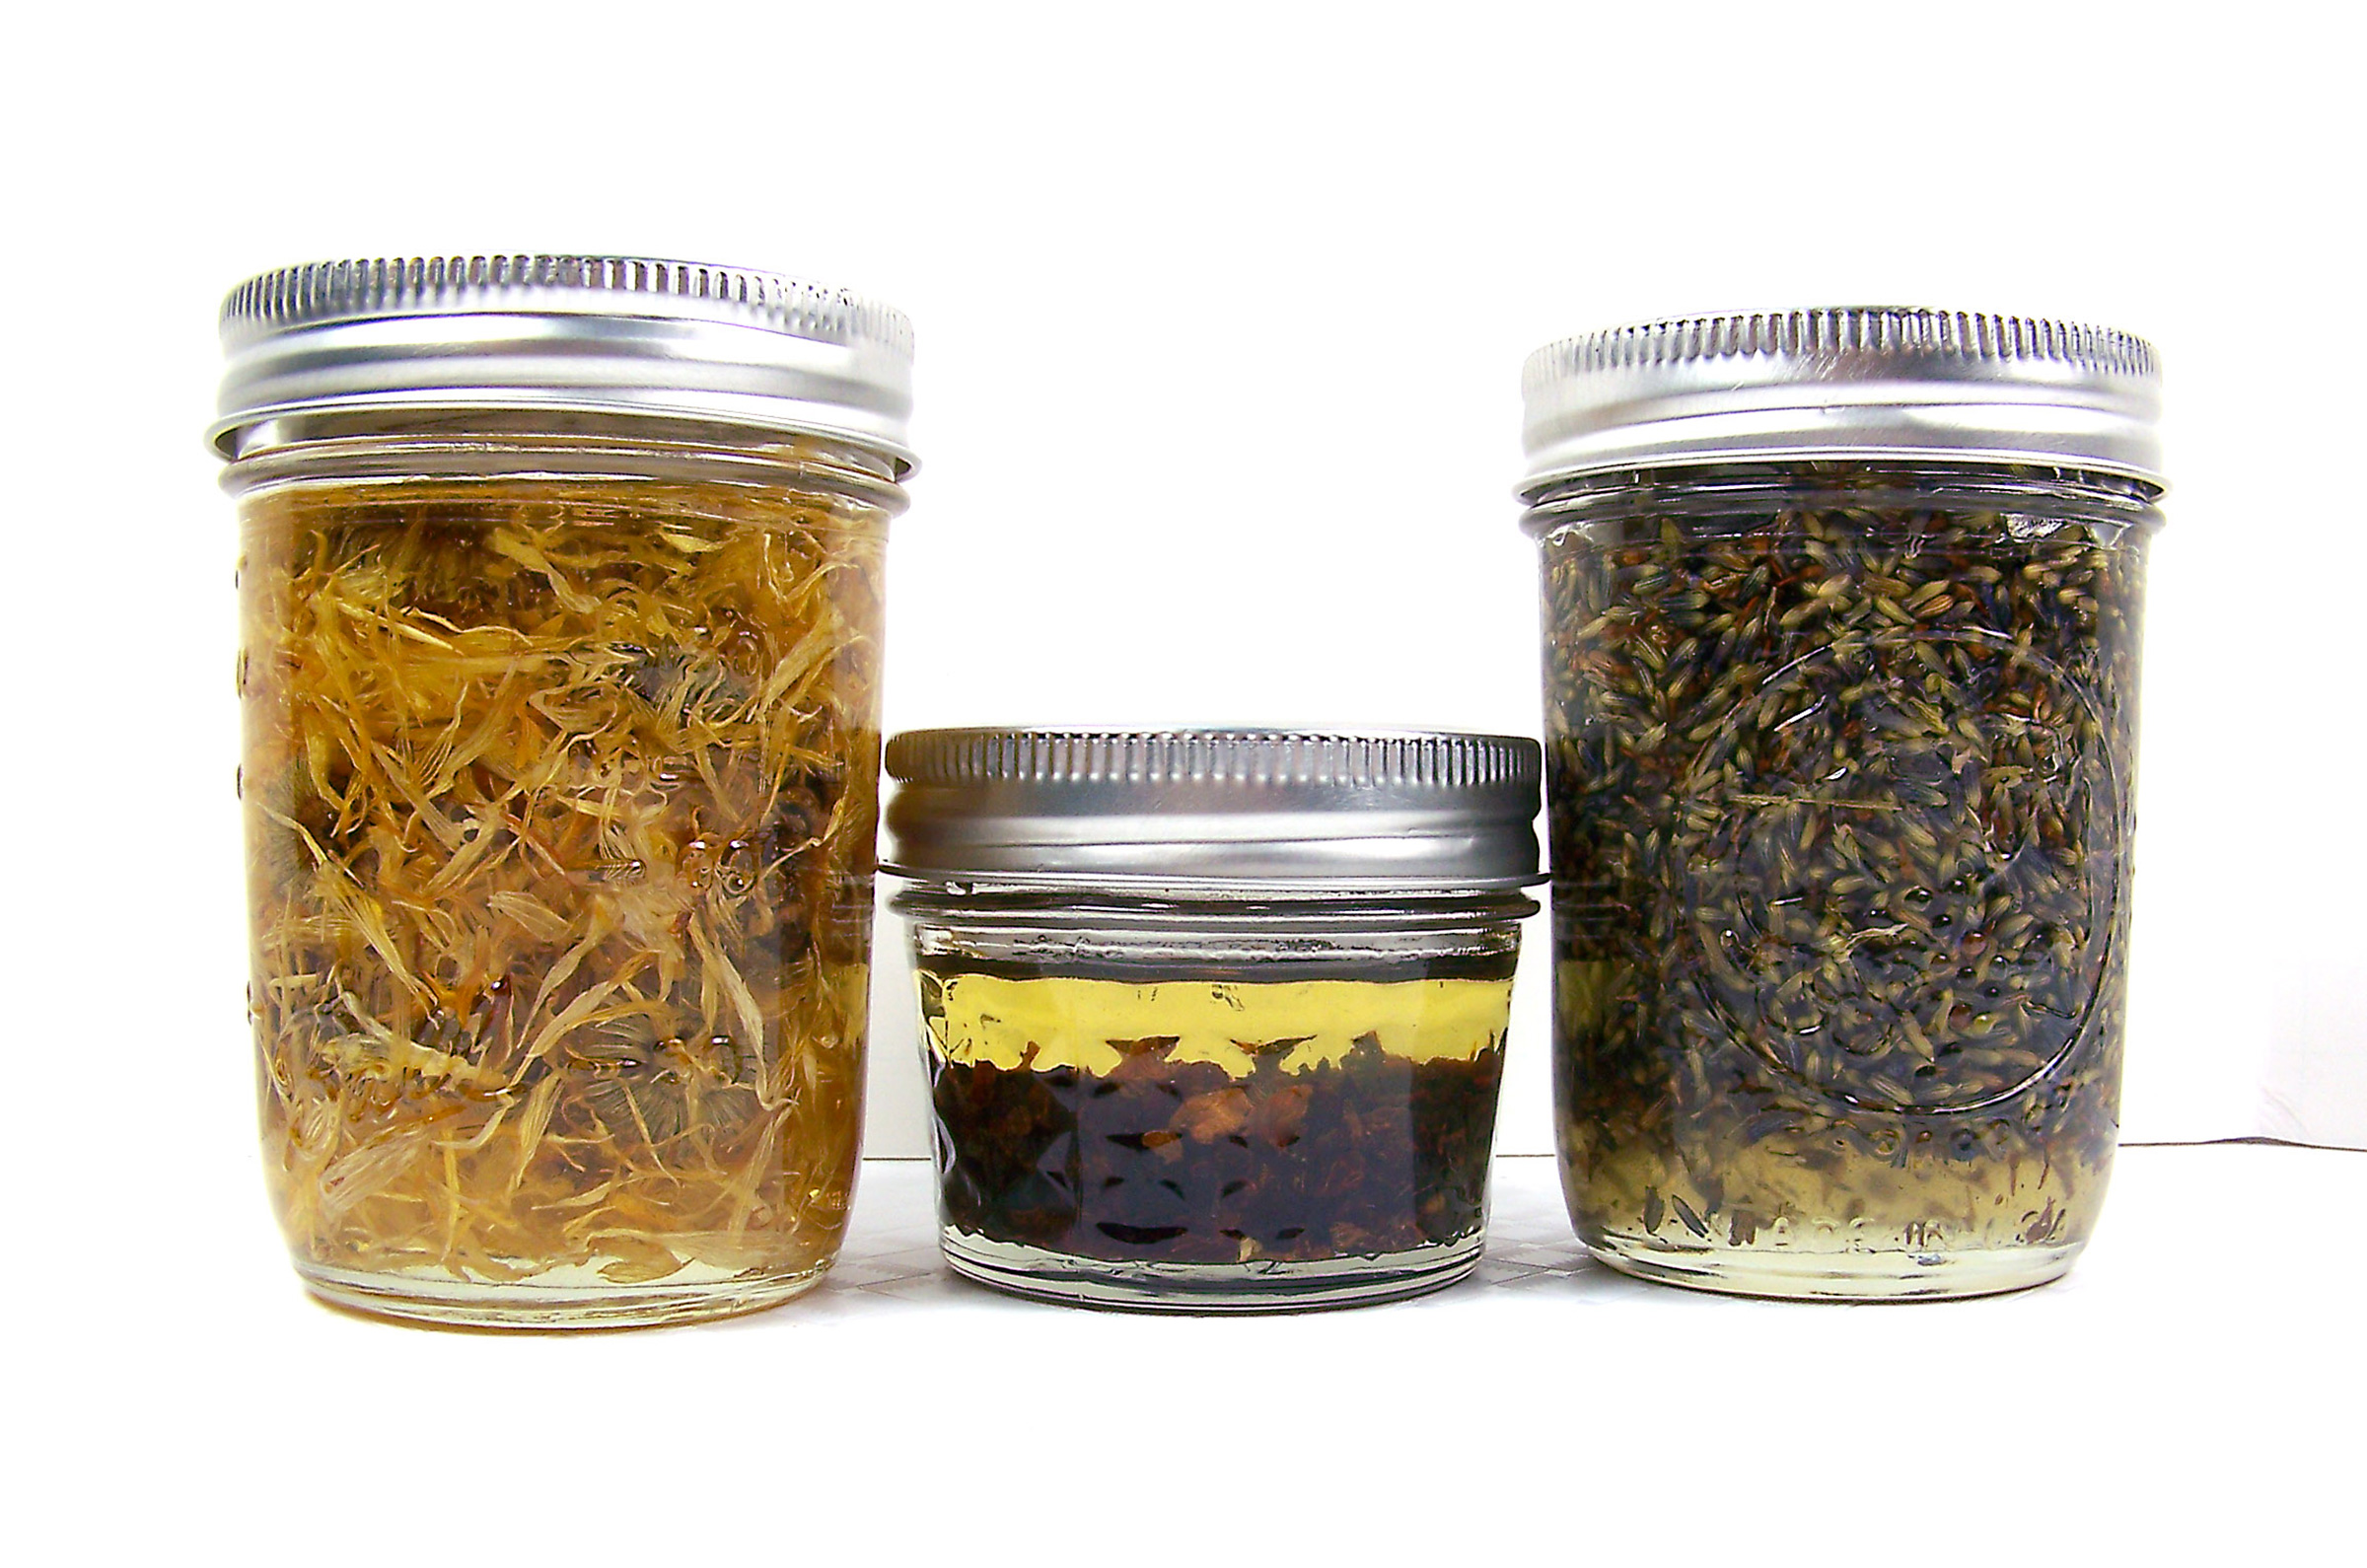 let your infused oils set for 4-6 weeks